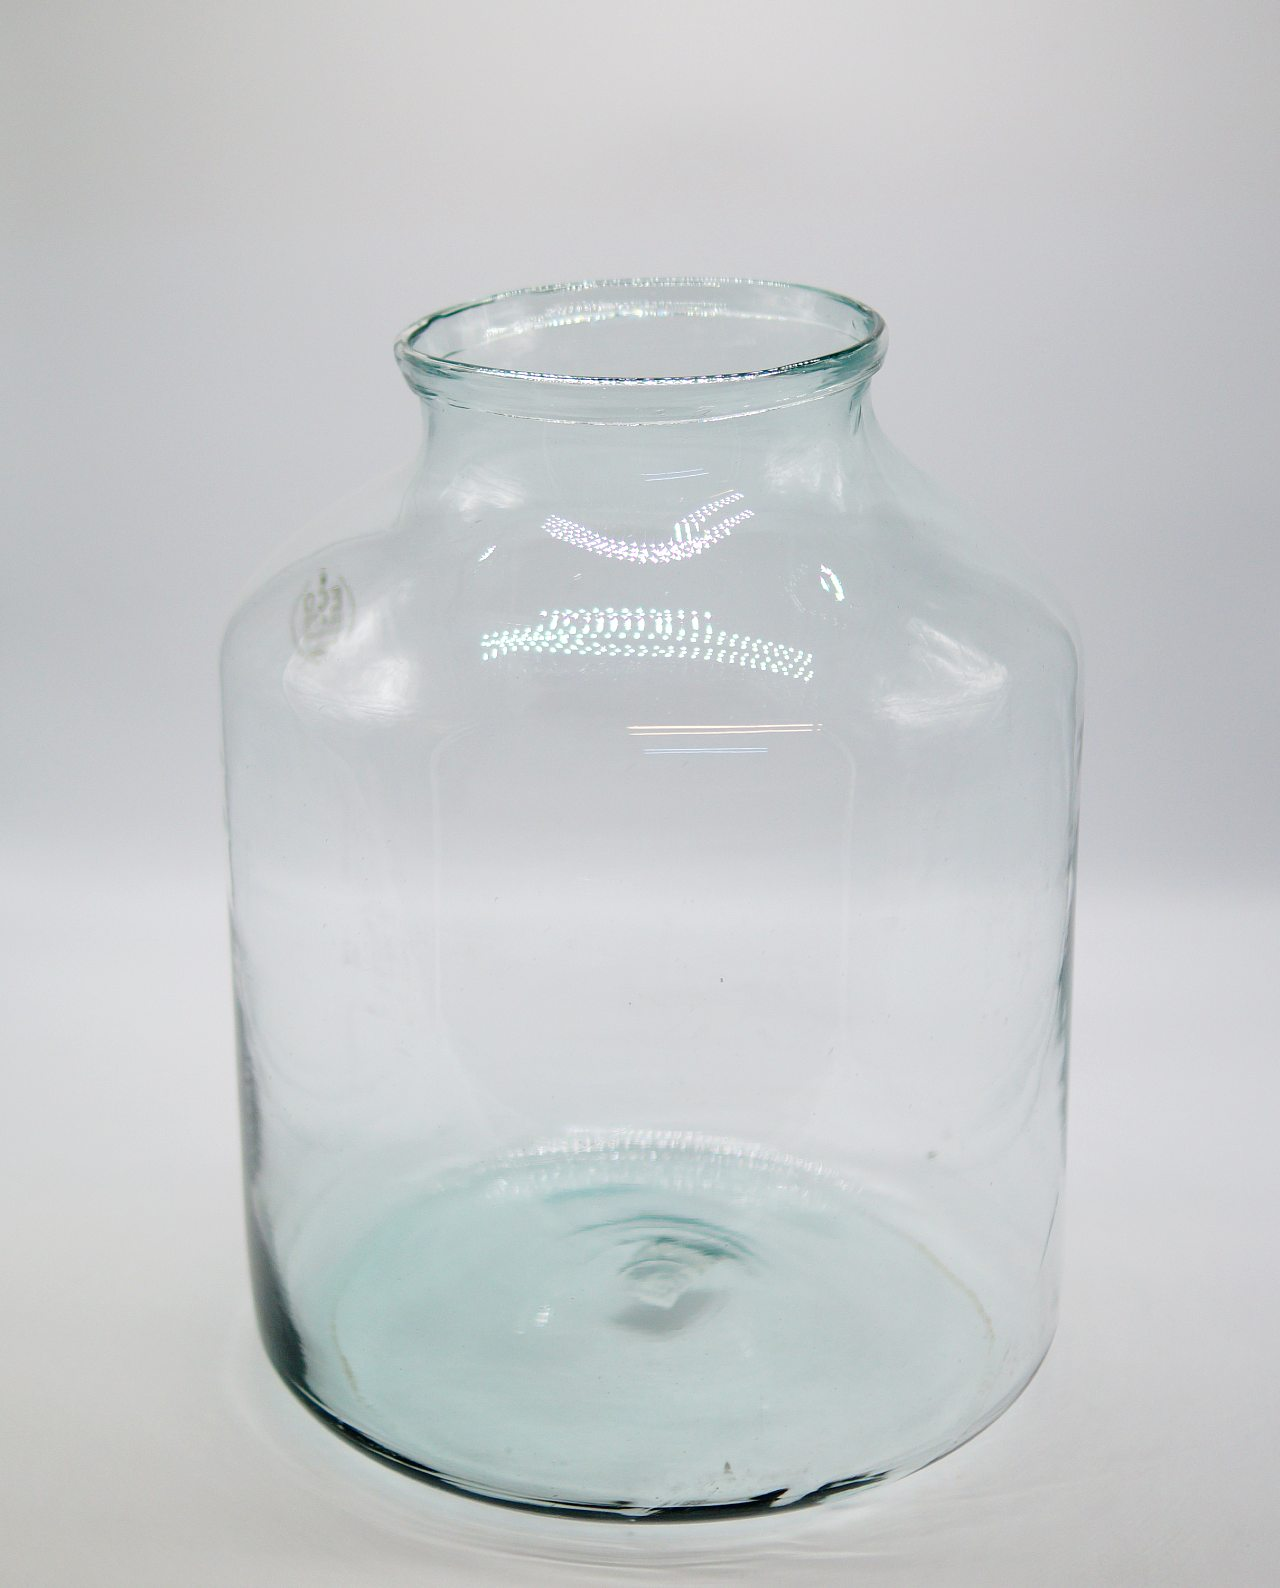 Glass vase made from recycled glass, eco friendly height 42 cm